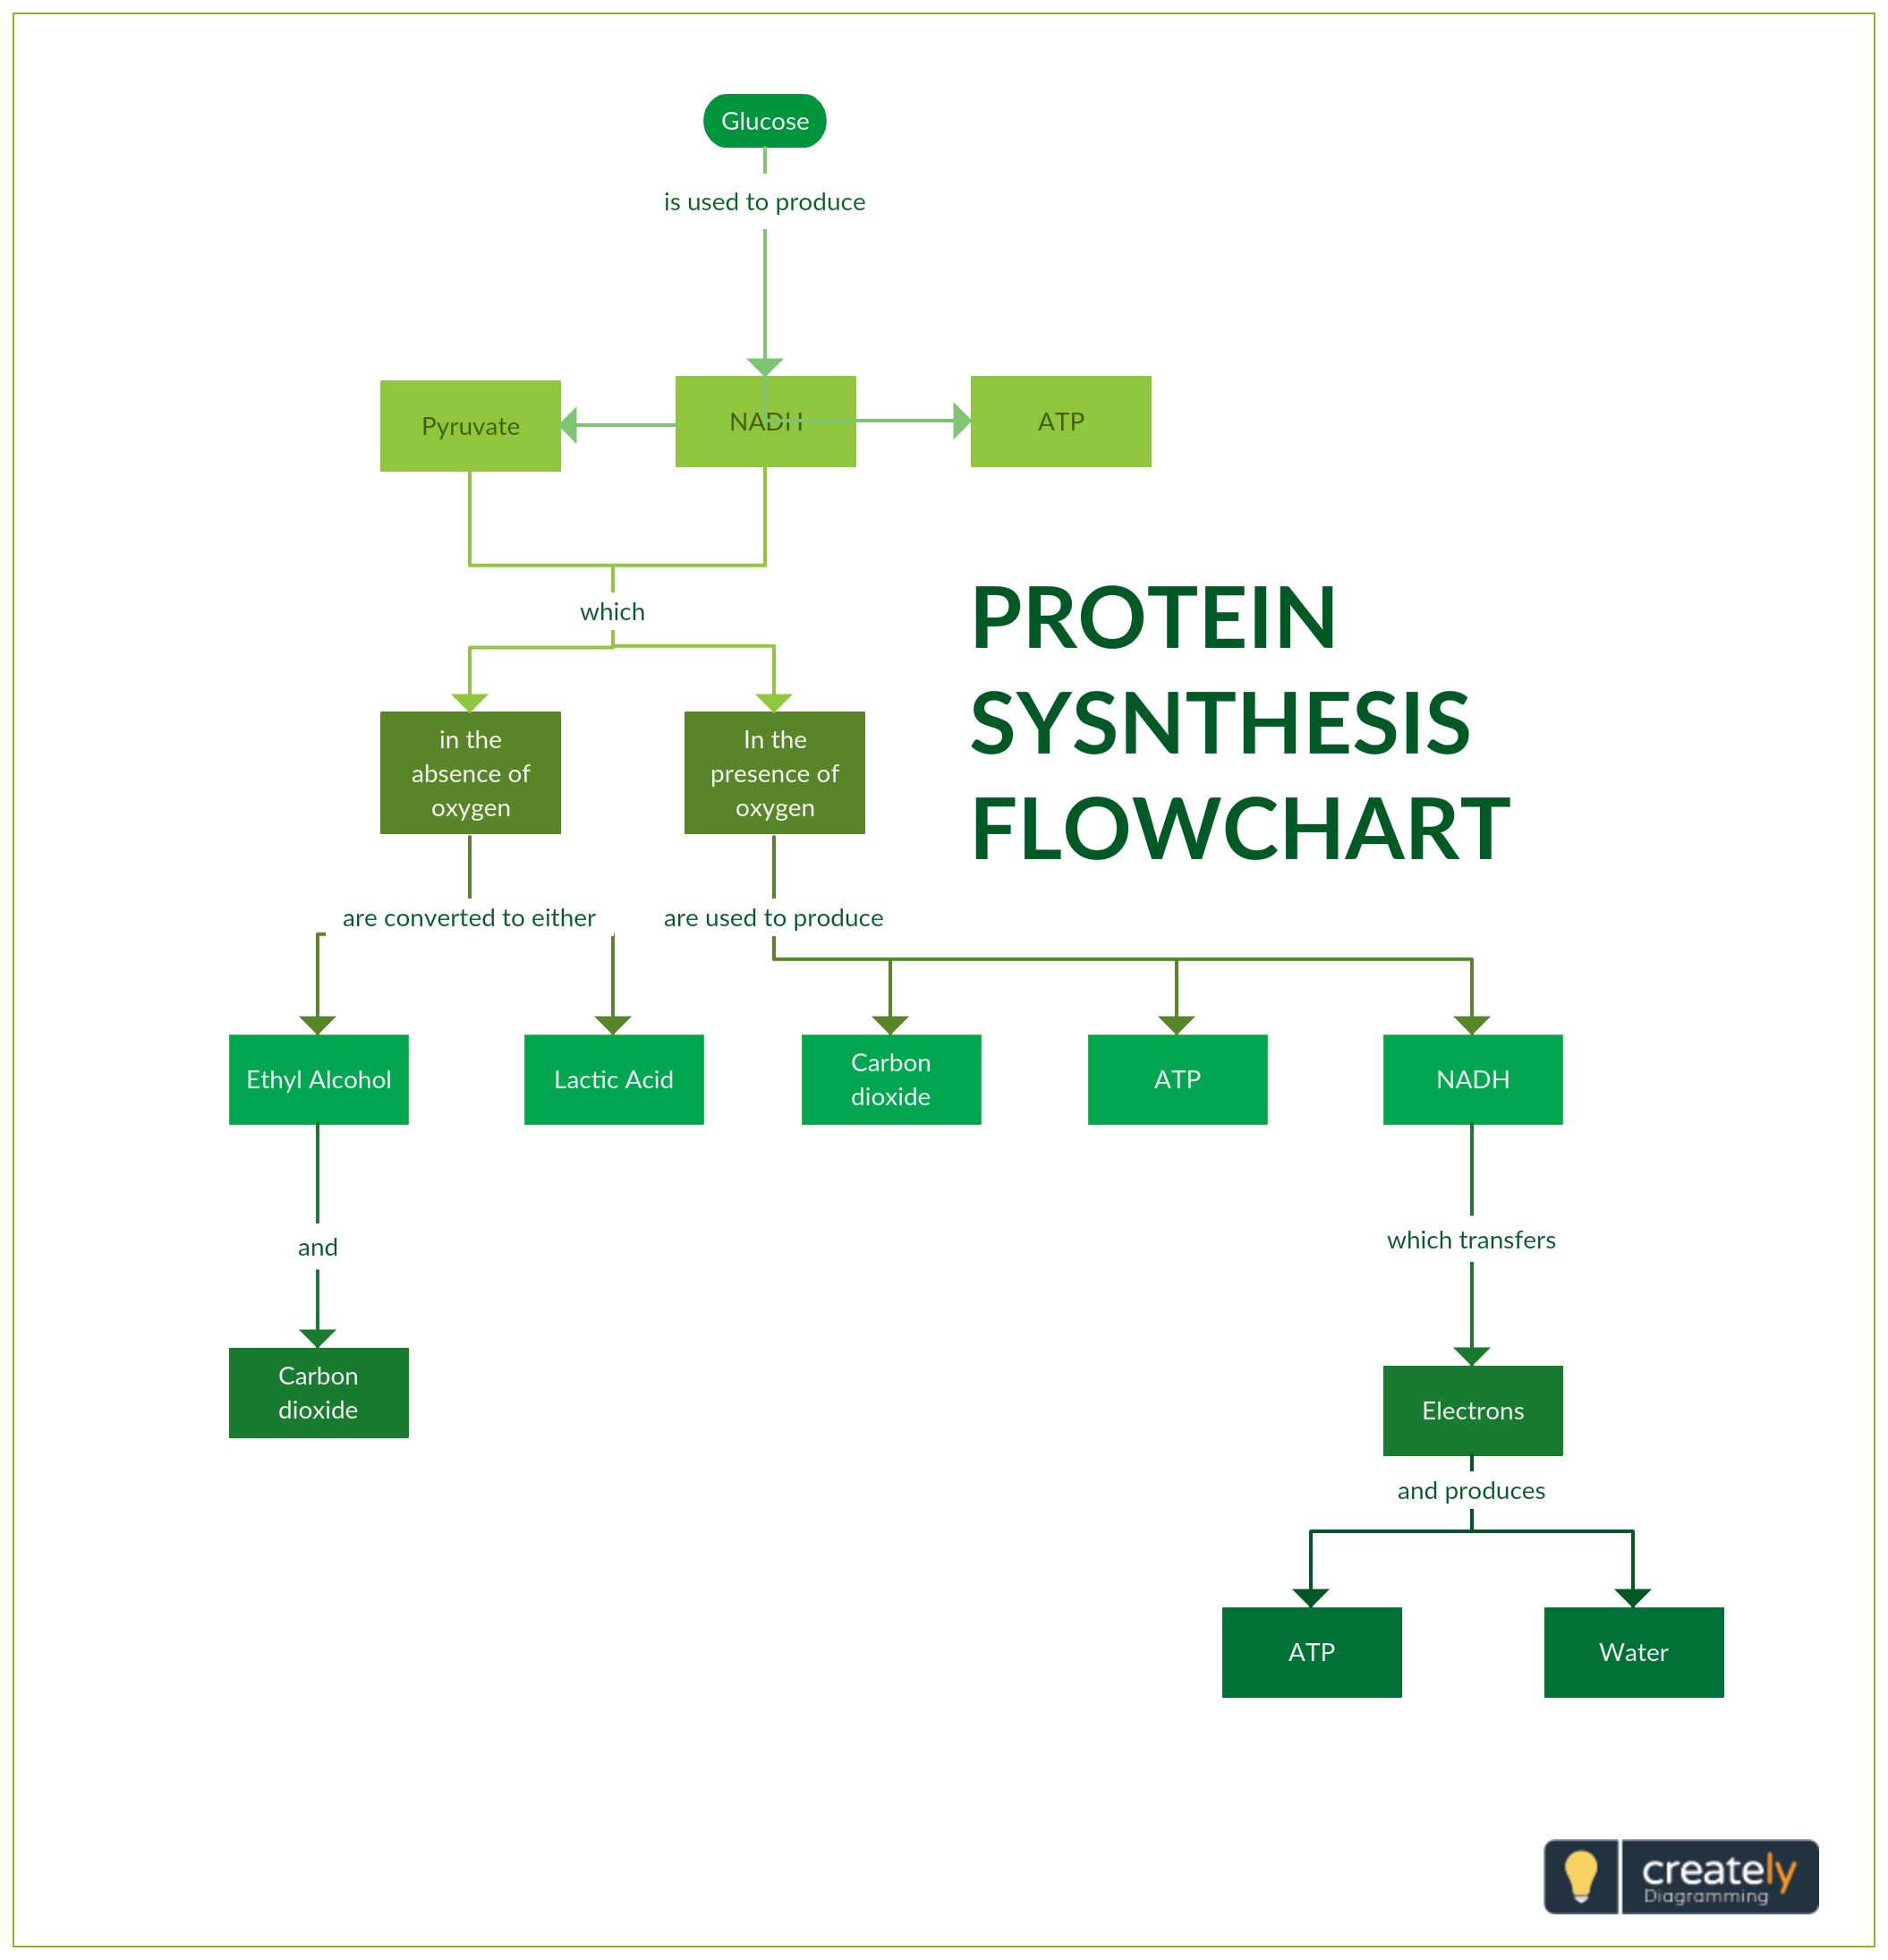 Protein Synthesis Flowchart - Protein Synthesis Flow Chart shows the process  of one of the most